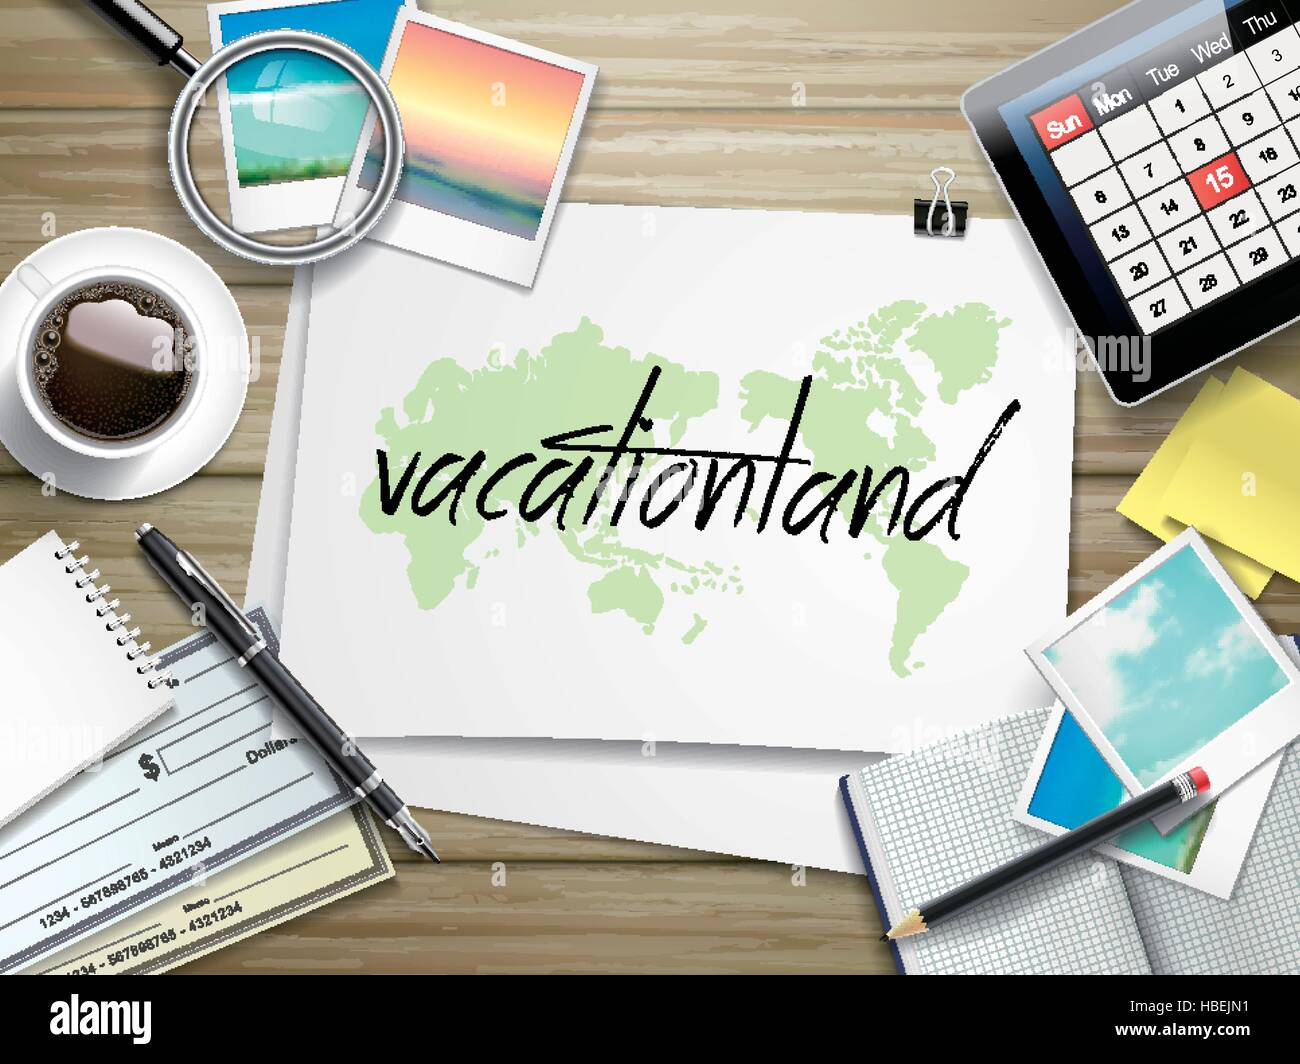 top view of travel items on wooden table with vacationland word written on paper - Stock Image